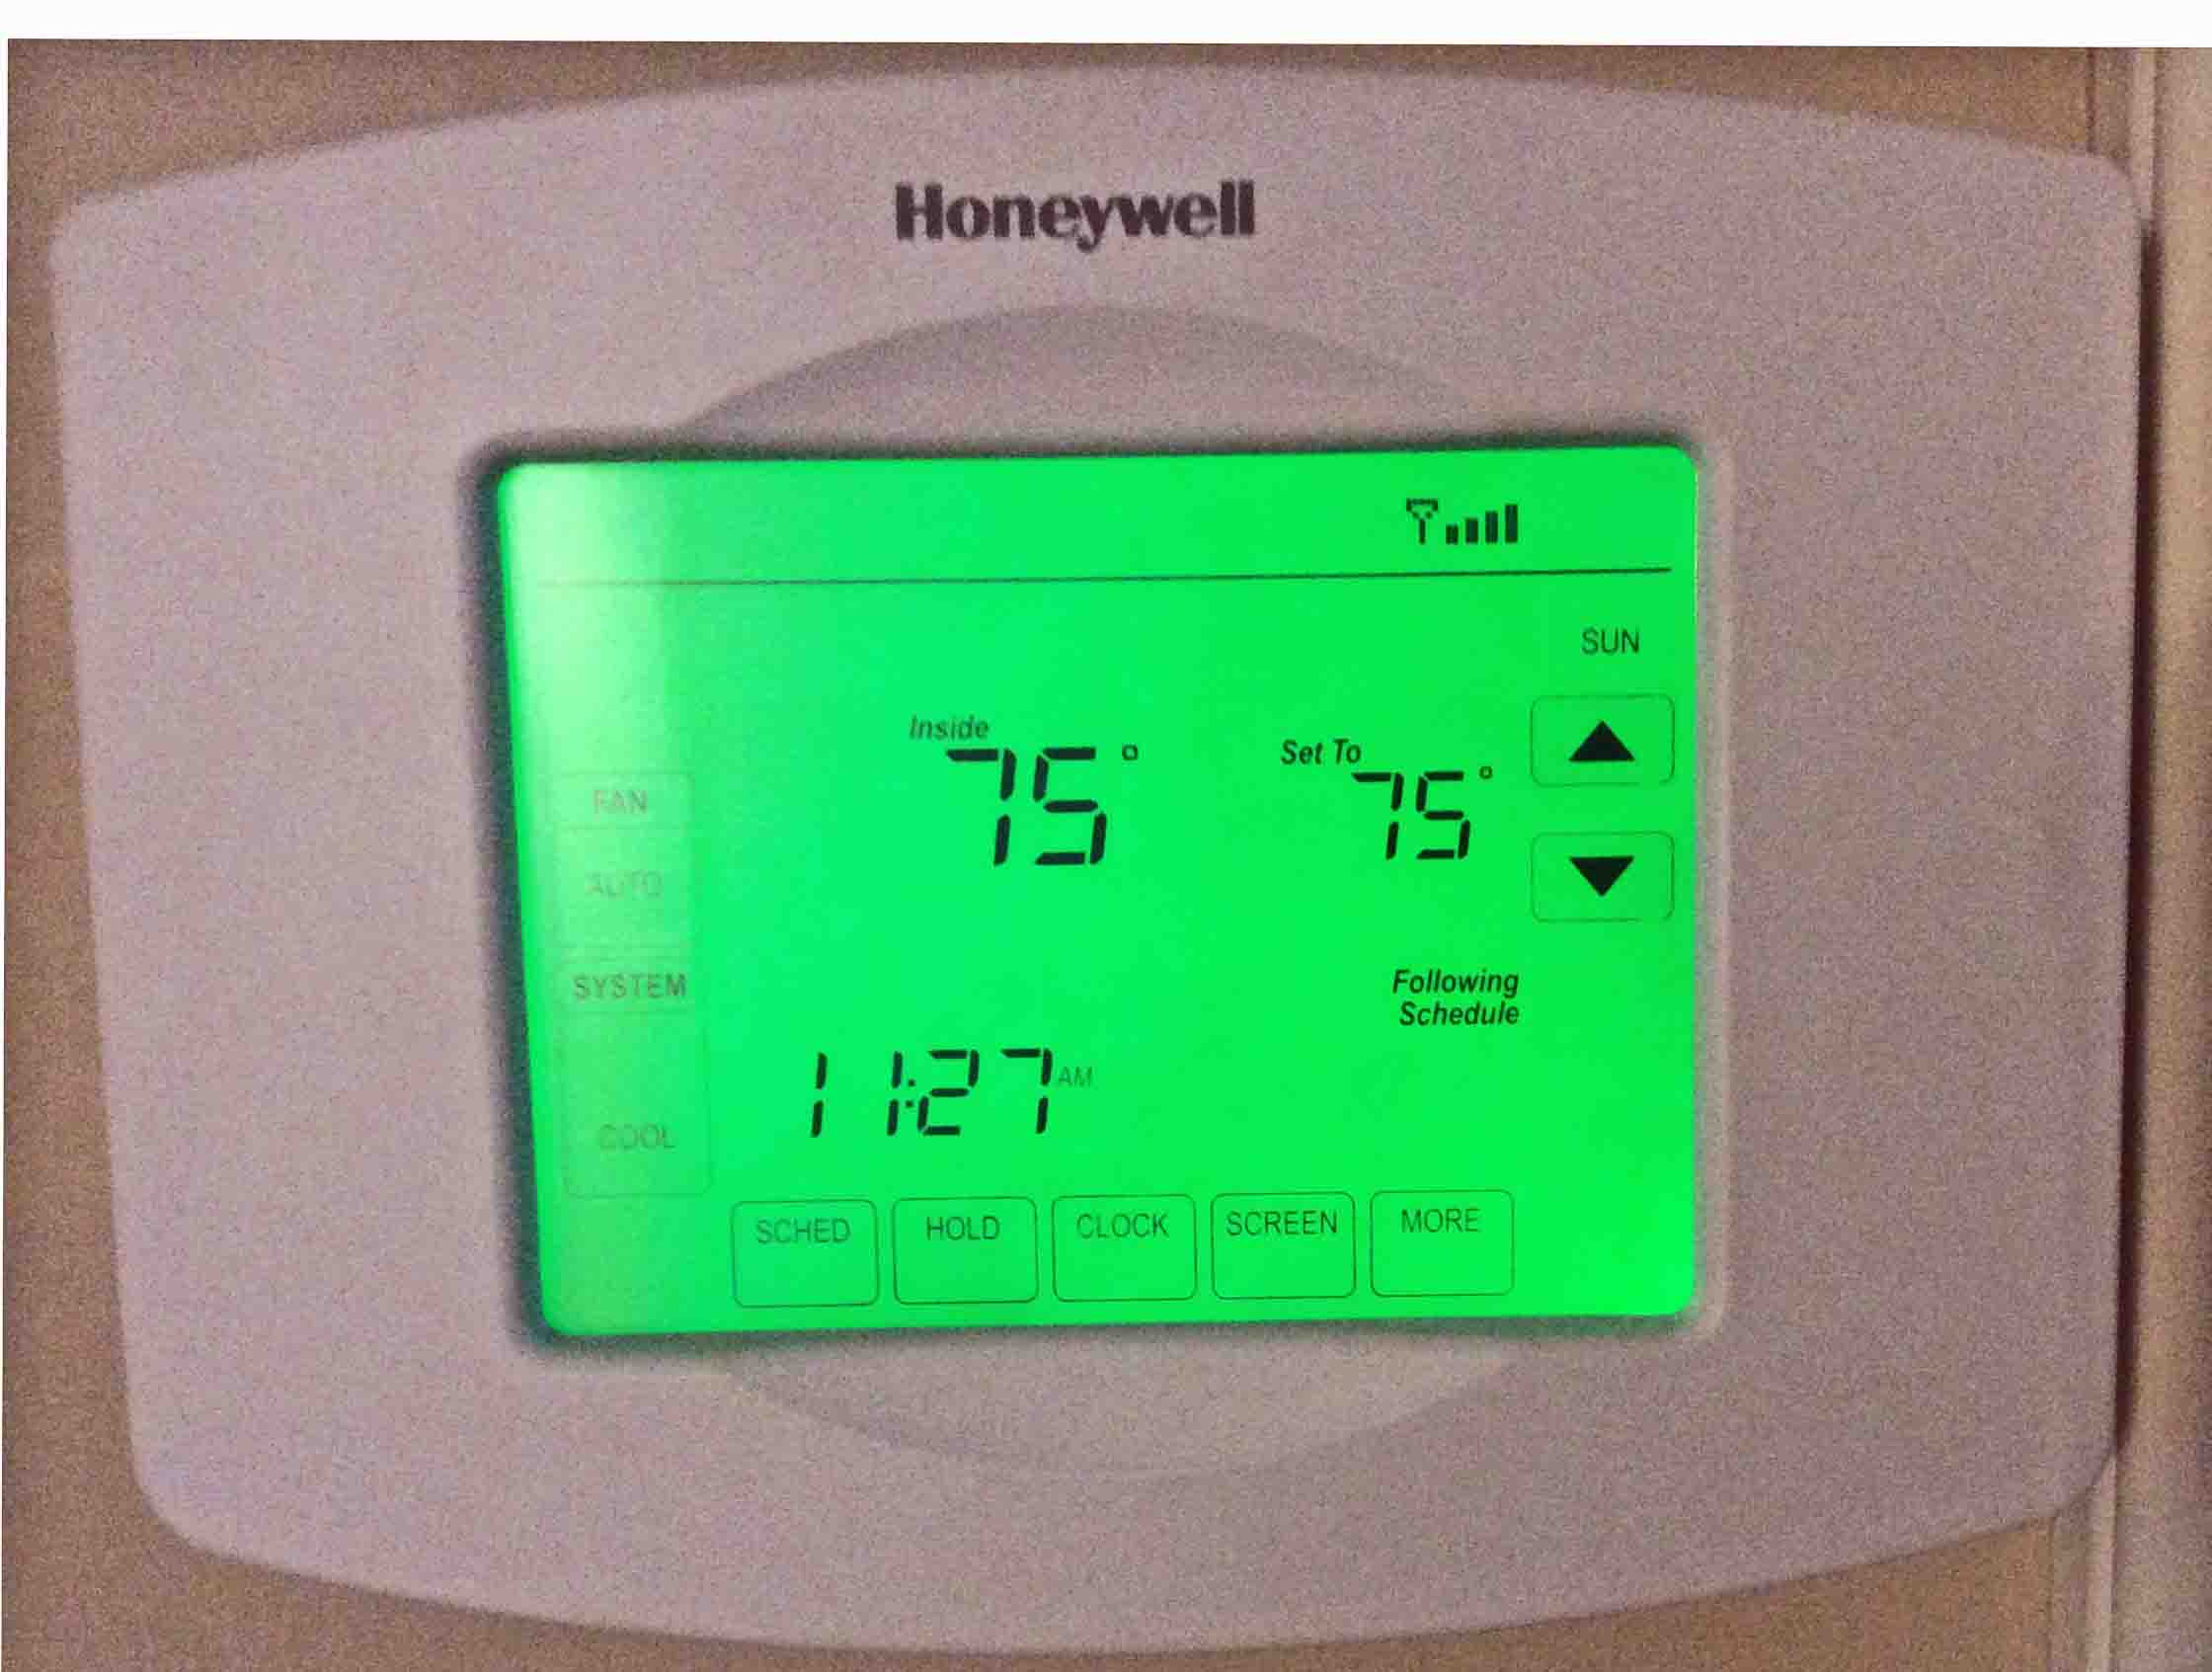 Honeywell 7 Day Wifi Thermostat Manual Wiring For Trusted Diagram